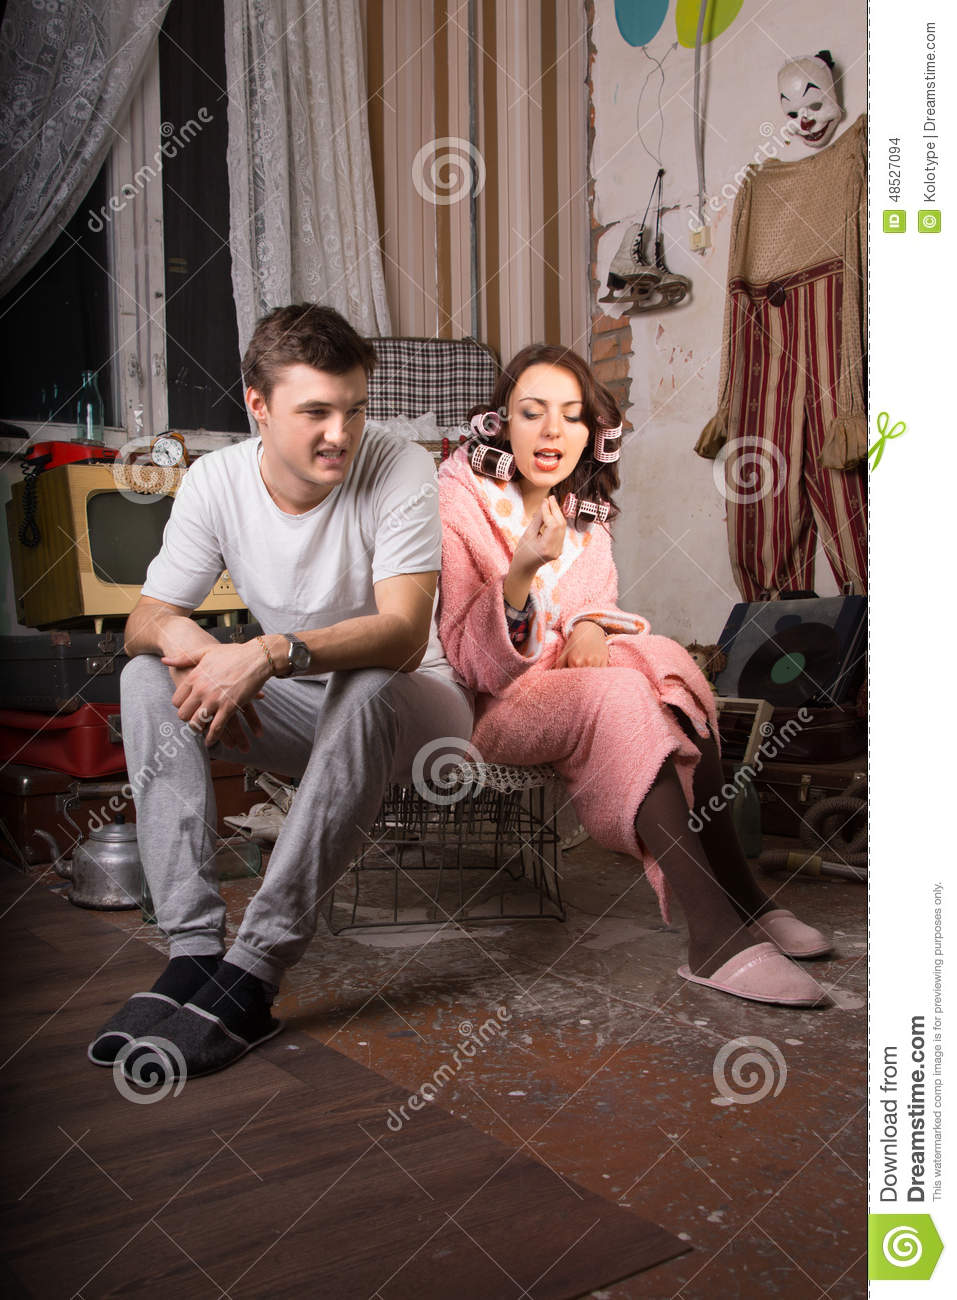 Young Couple Sitting on Cage at Messy Room